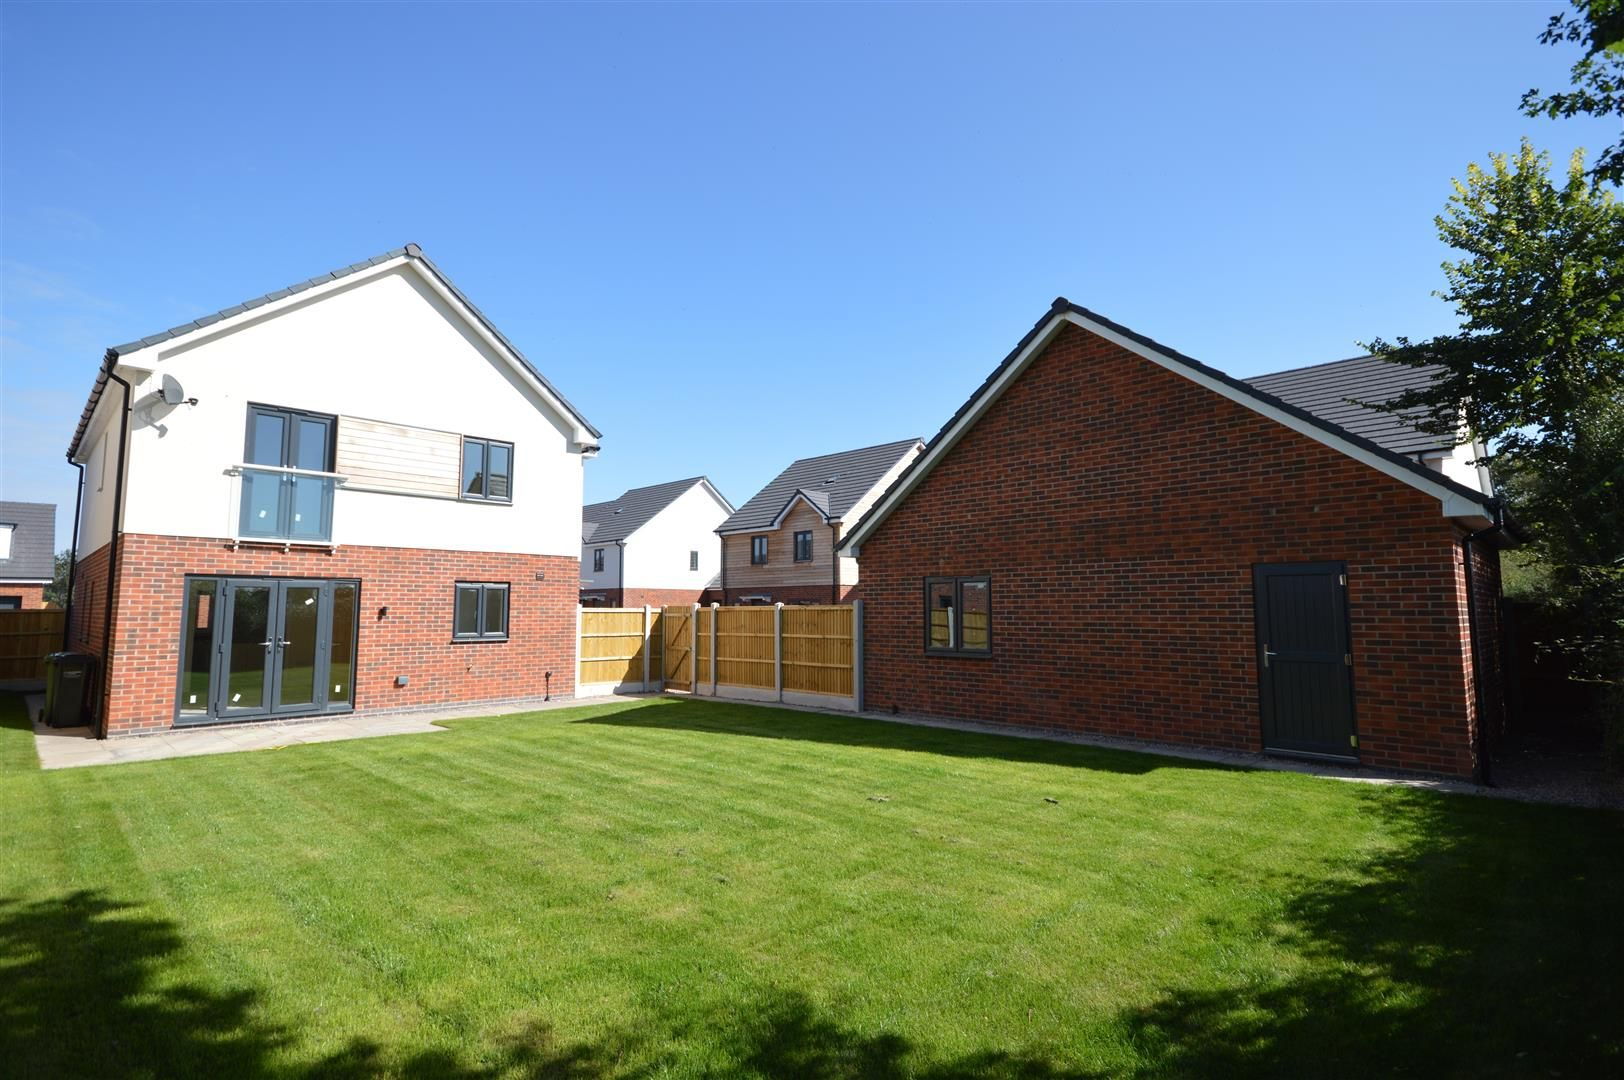 4 bed detached for sale in Kingsland 13